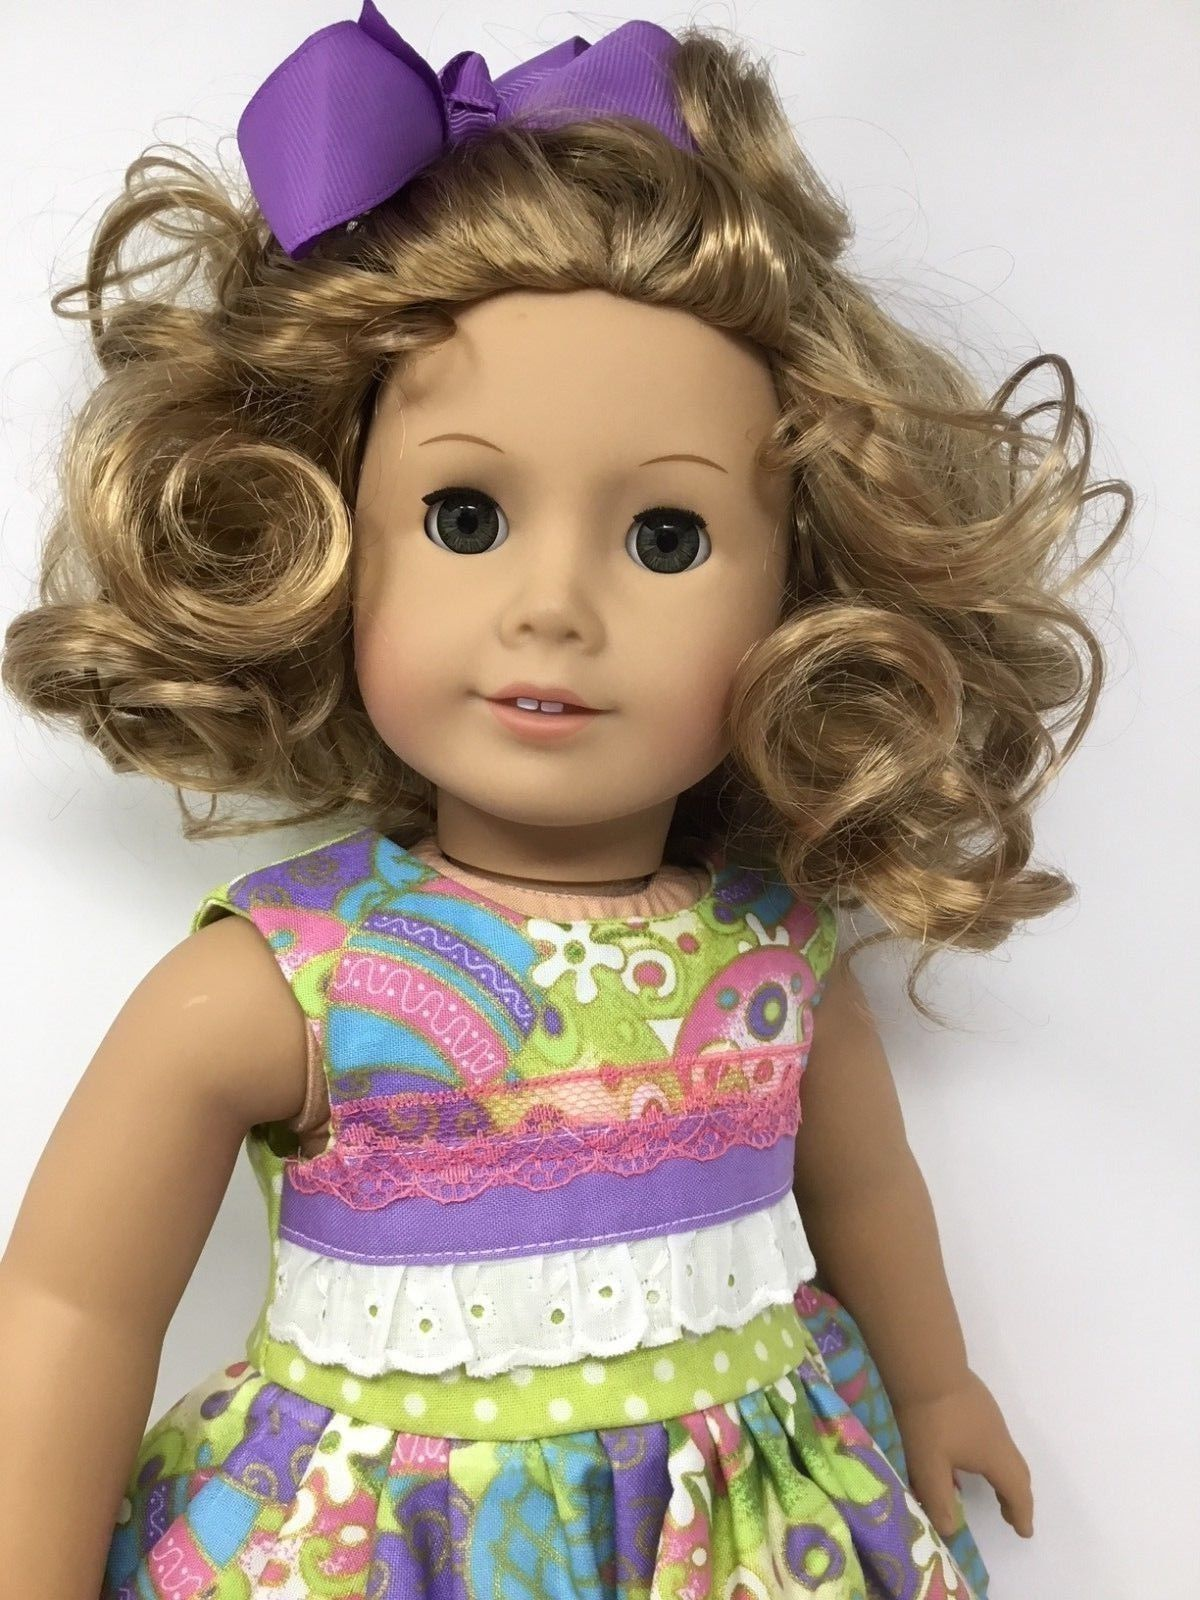 American girl doll curly blonde hair with hazel eyes with